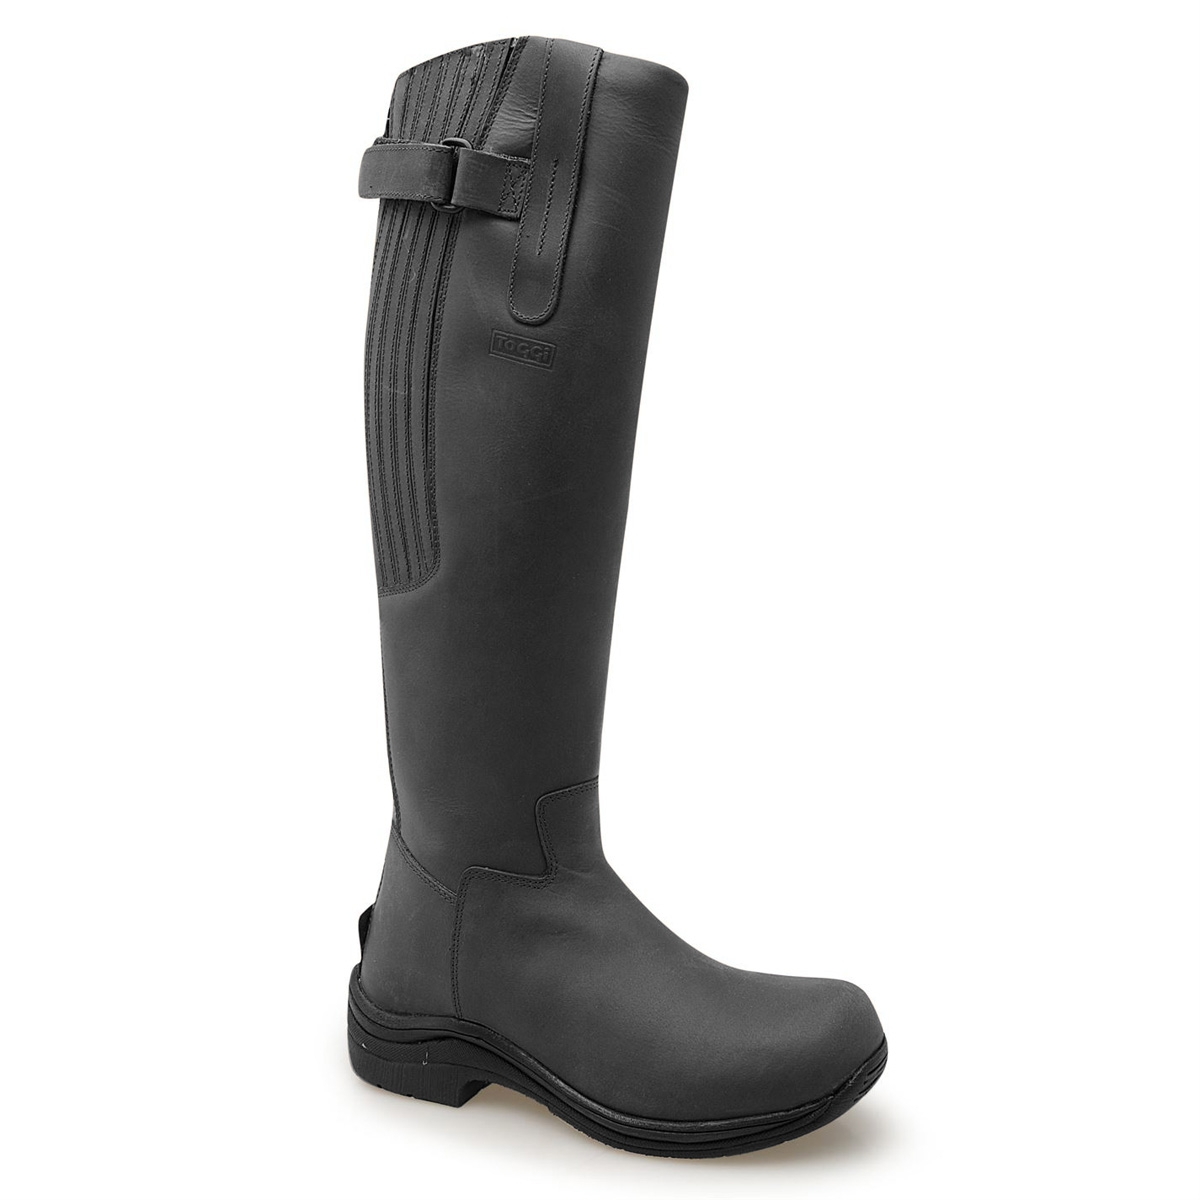 toggi boots image of toggi calgary riding boots (womens) - black ... xkaeeqy